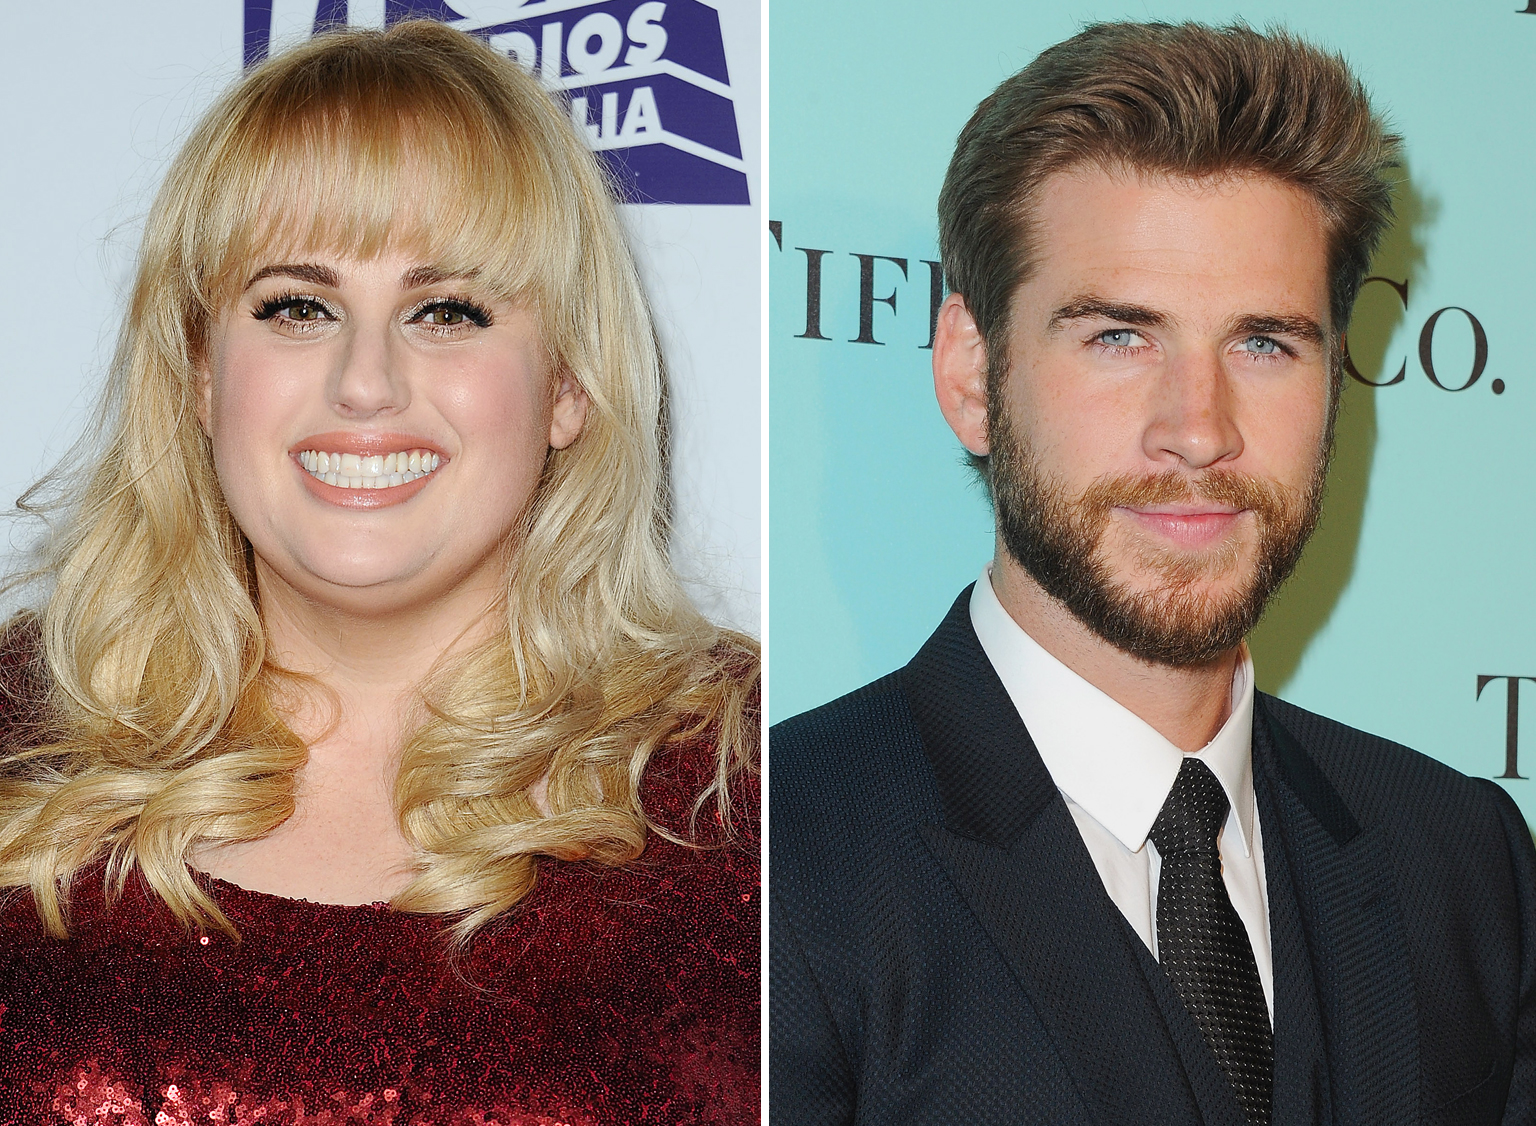 Liam Hemsworth and Rebel Wilson Share a Steamy Kiss on Their Movie Set